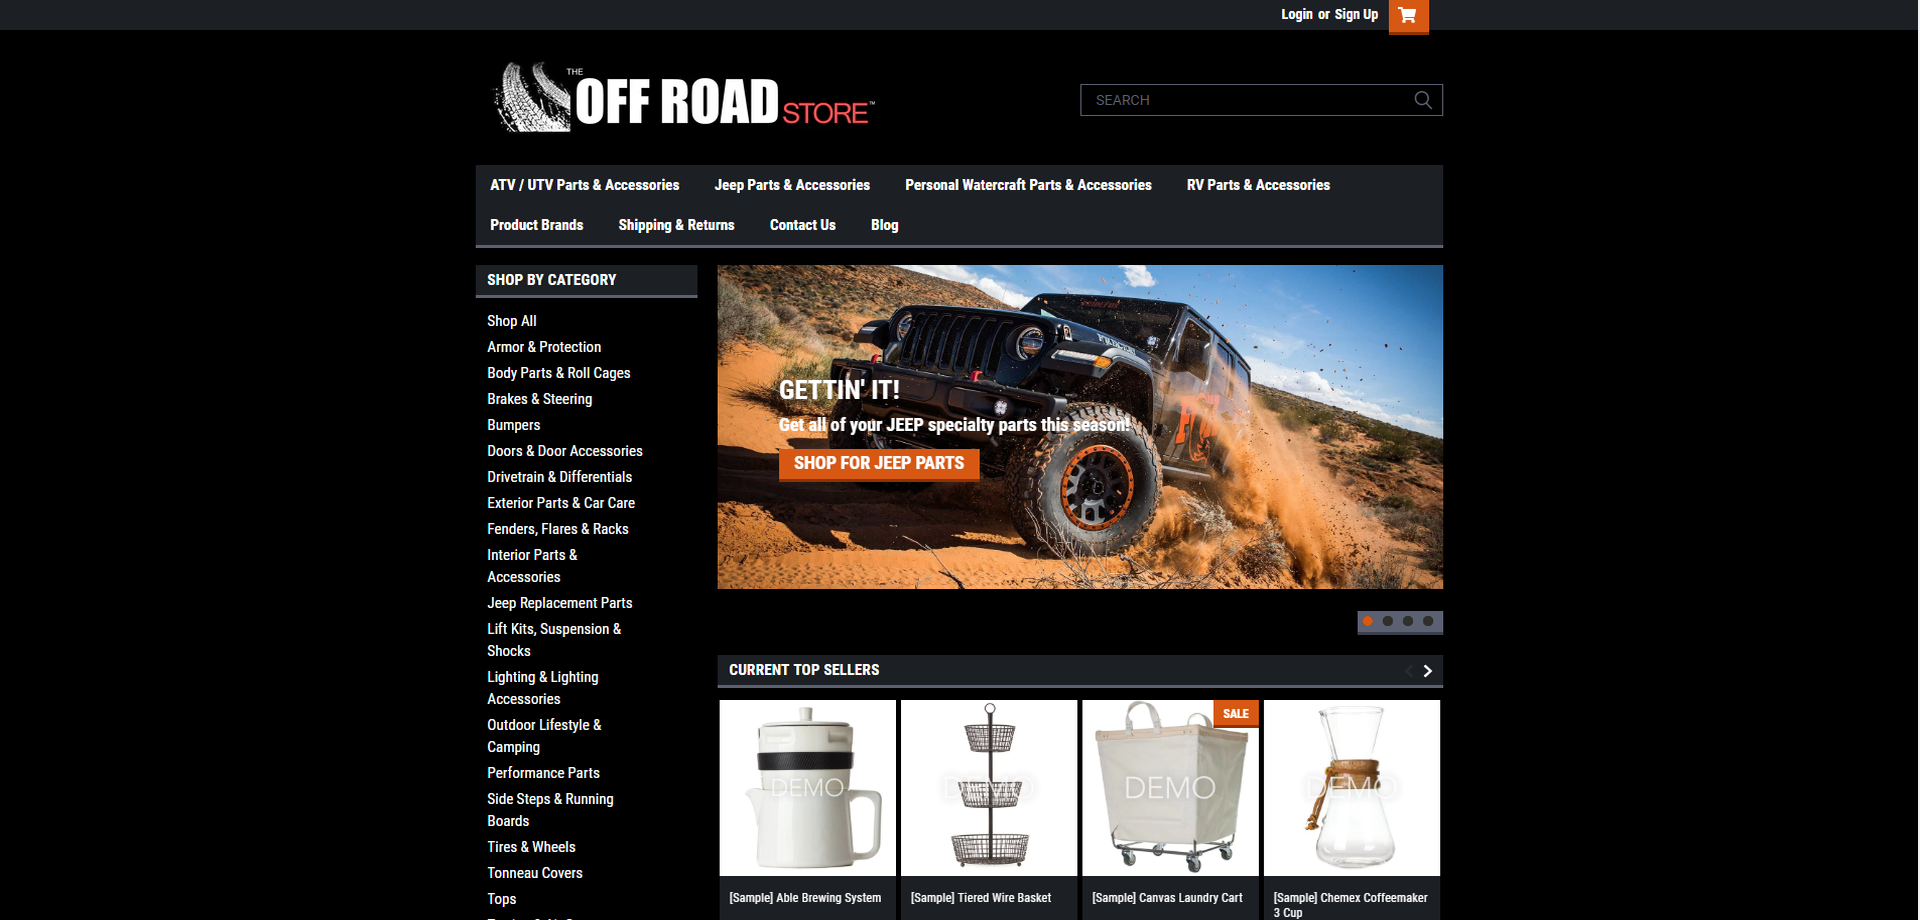 Offroad.store